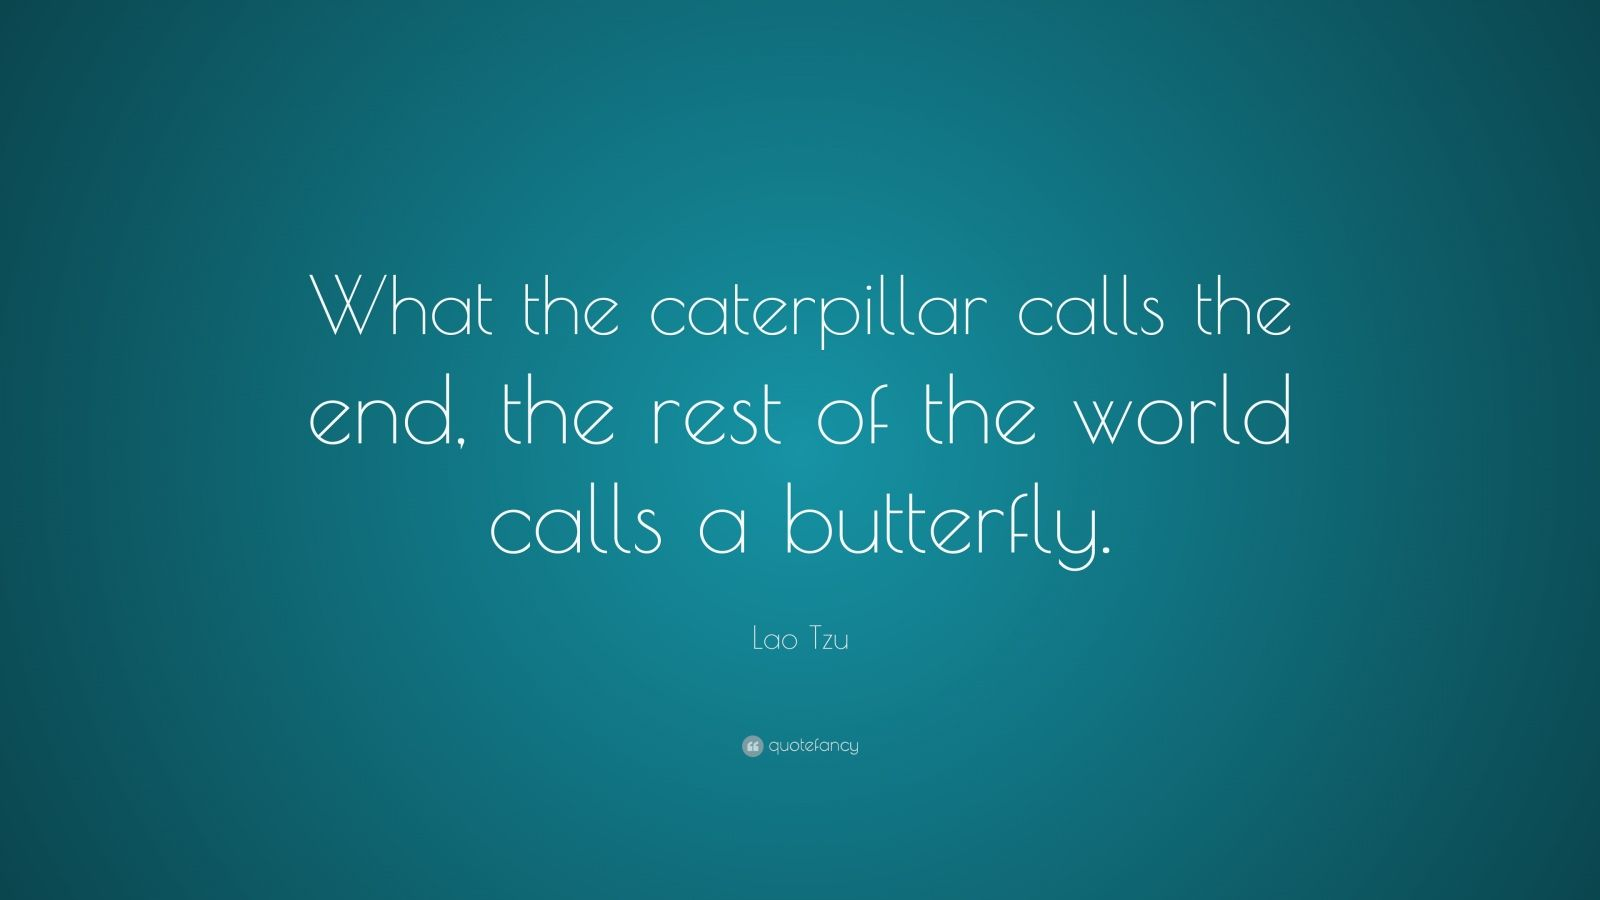 Persistence Quotes Wallpapers Lao Tzu Quote What The Caterpillar Calls The End The